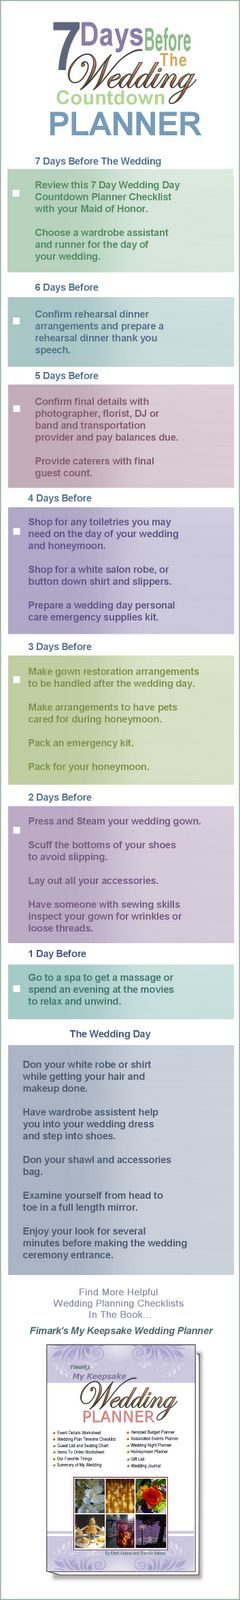 Best Wedding Planning Checklists For Brides Images On